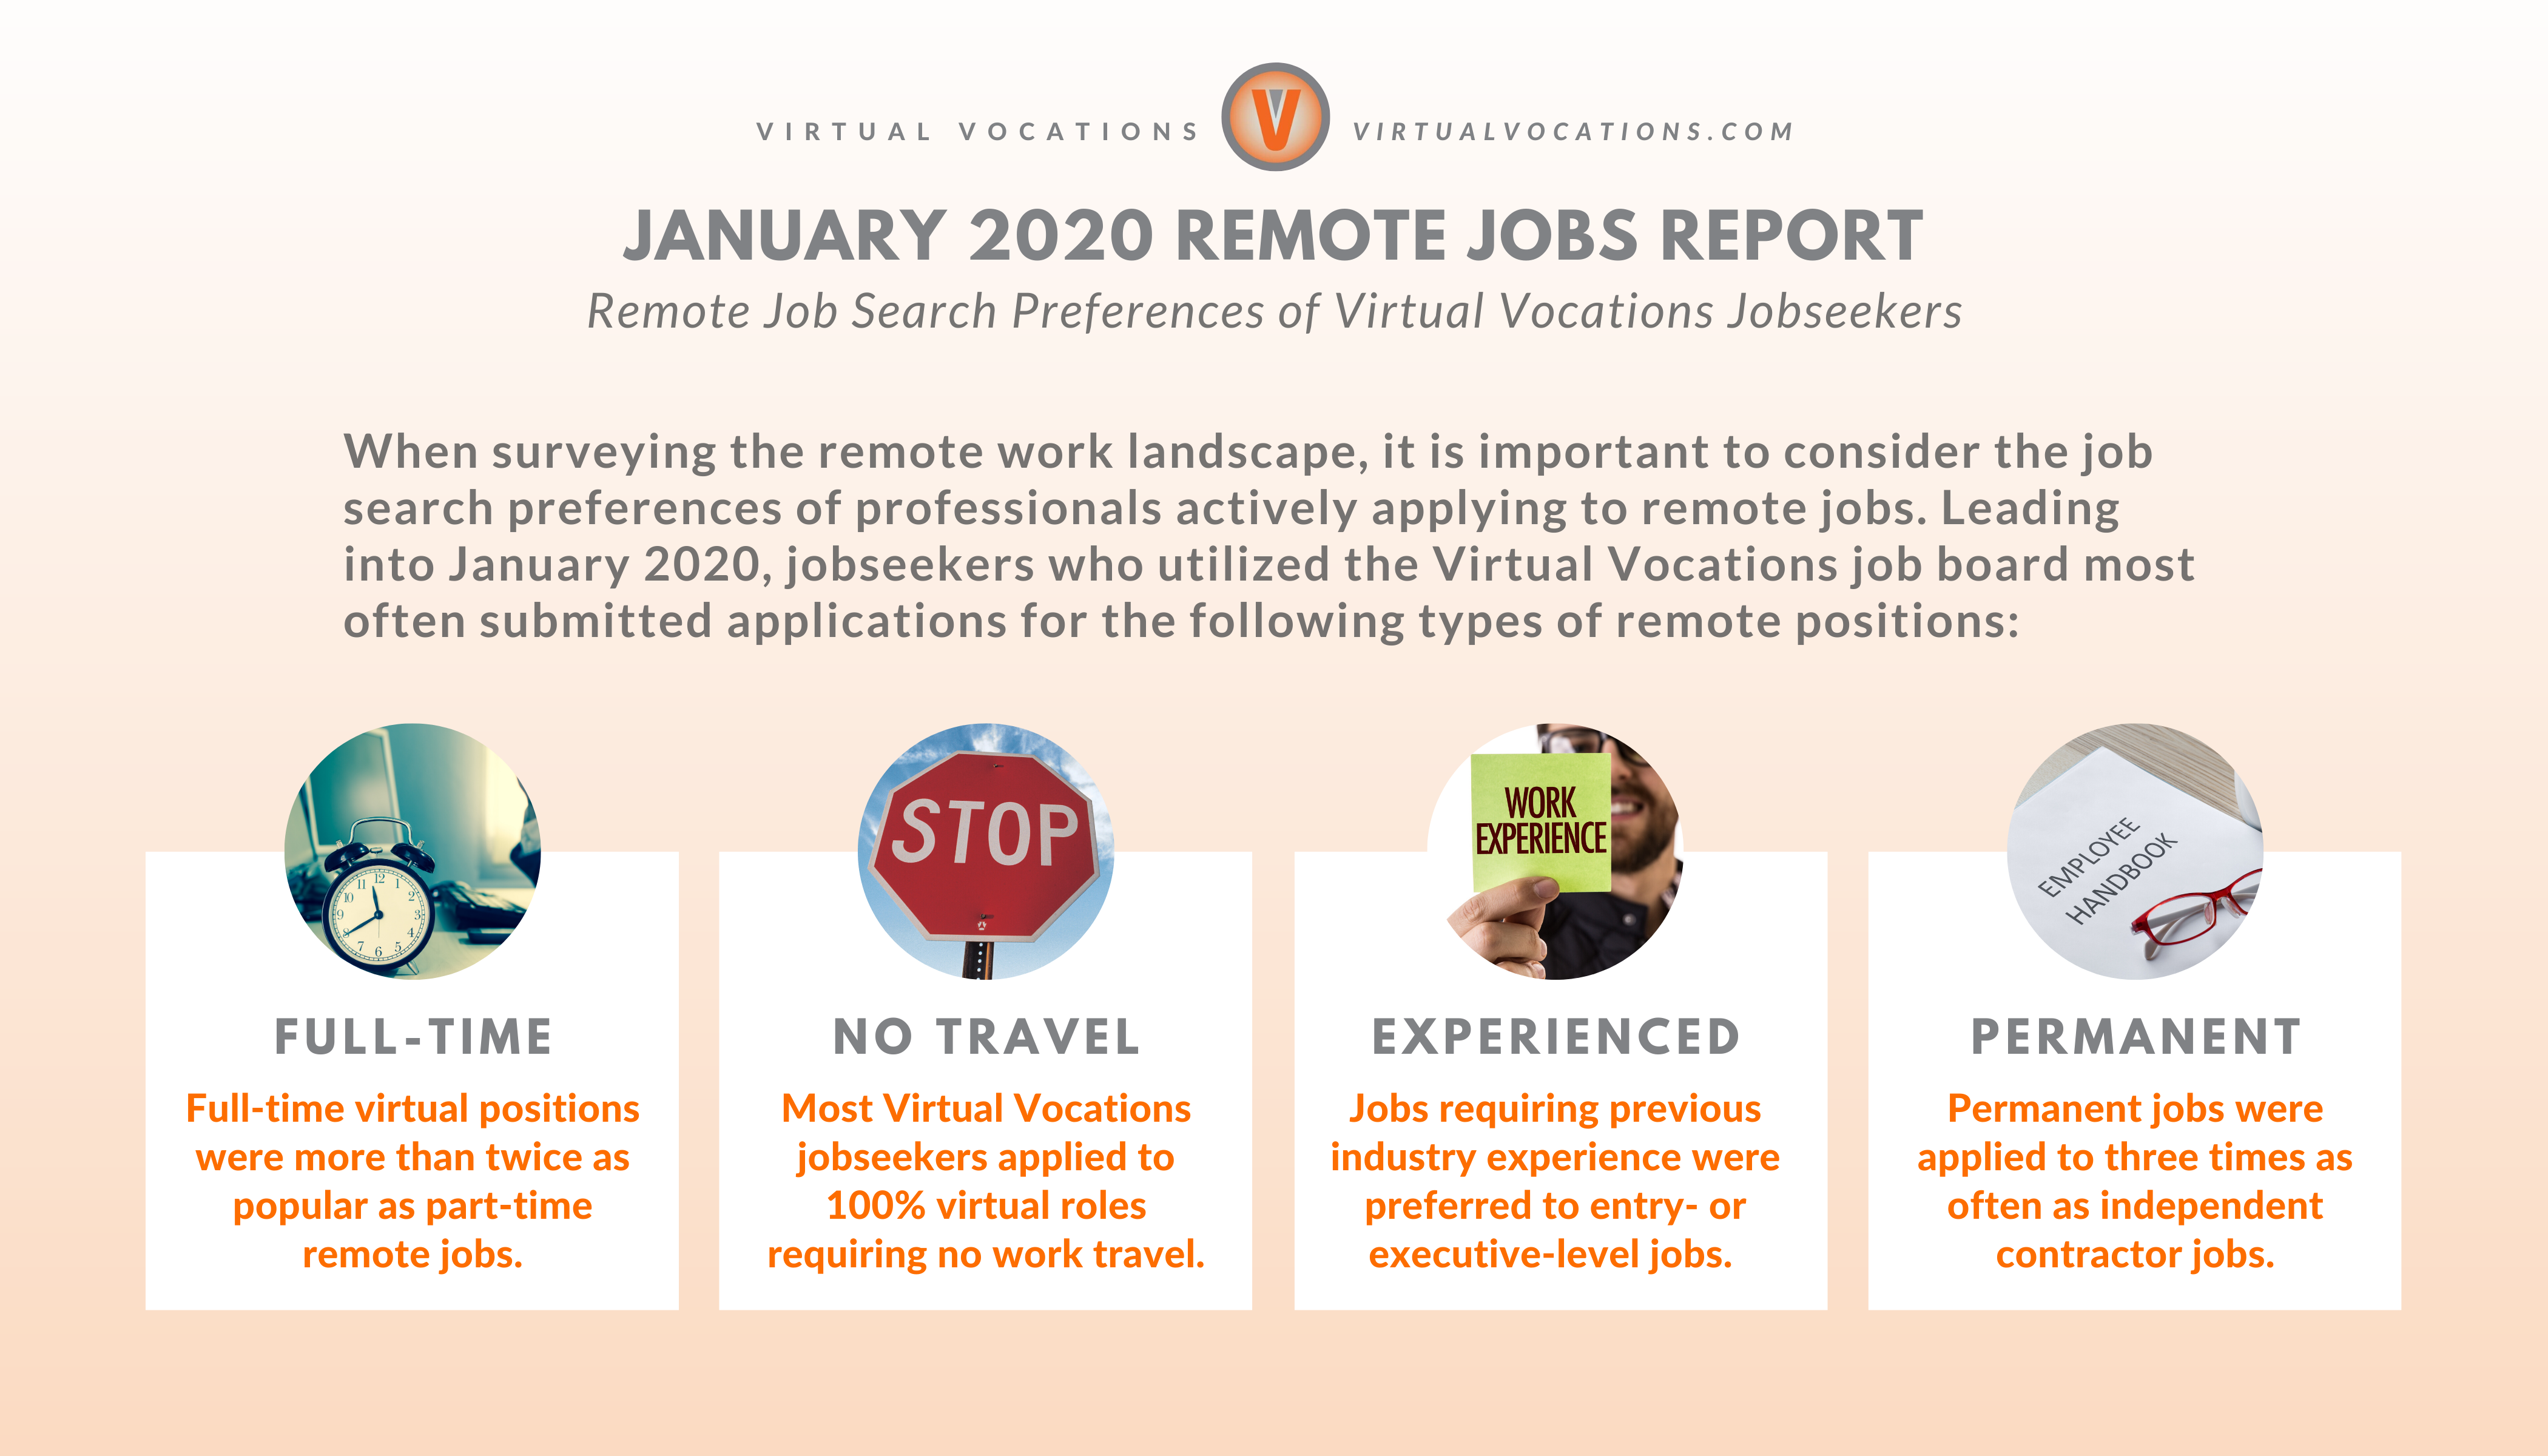 Remote Job Search Preferences of Virtual Vocations Jobseekers - January 2020 Remote Jobs Report - Virtual Vocations